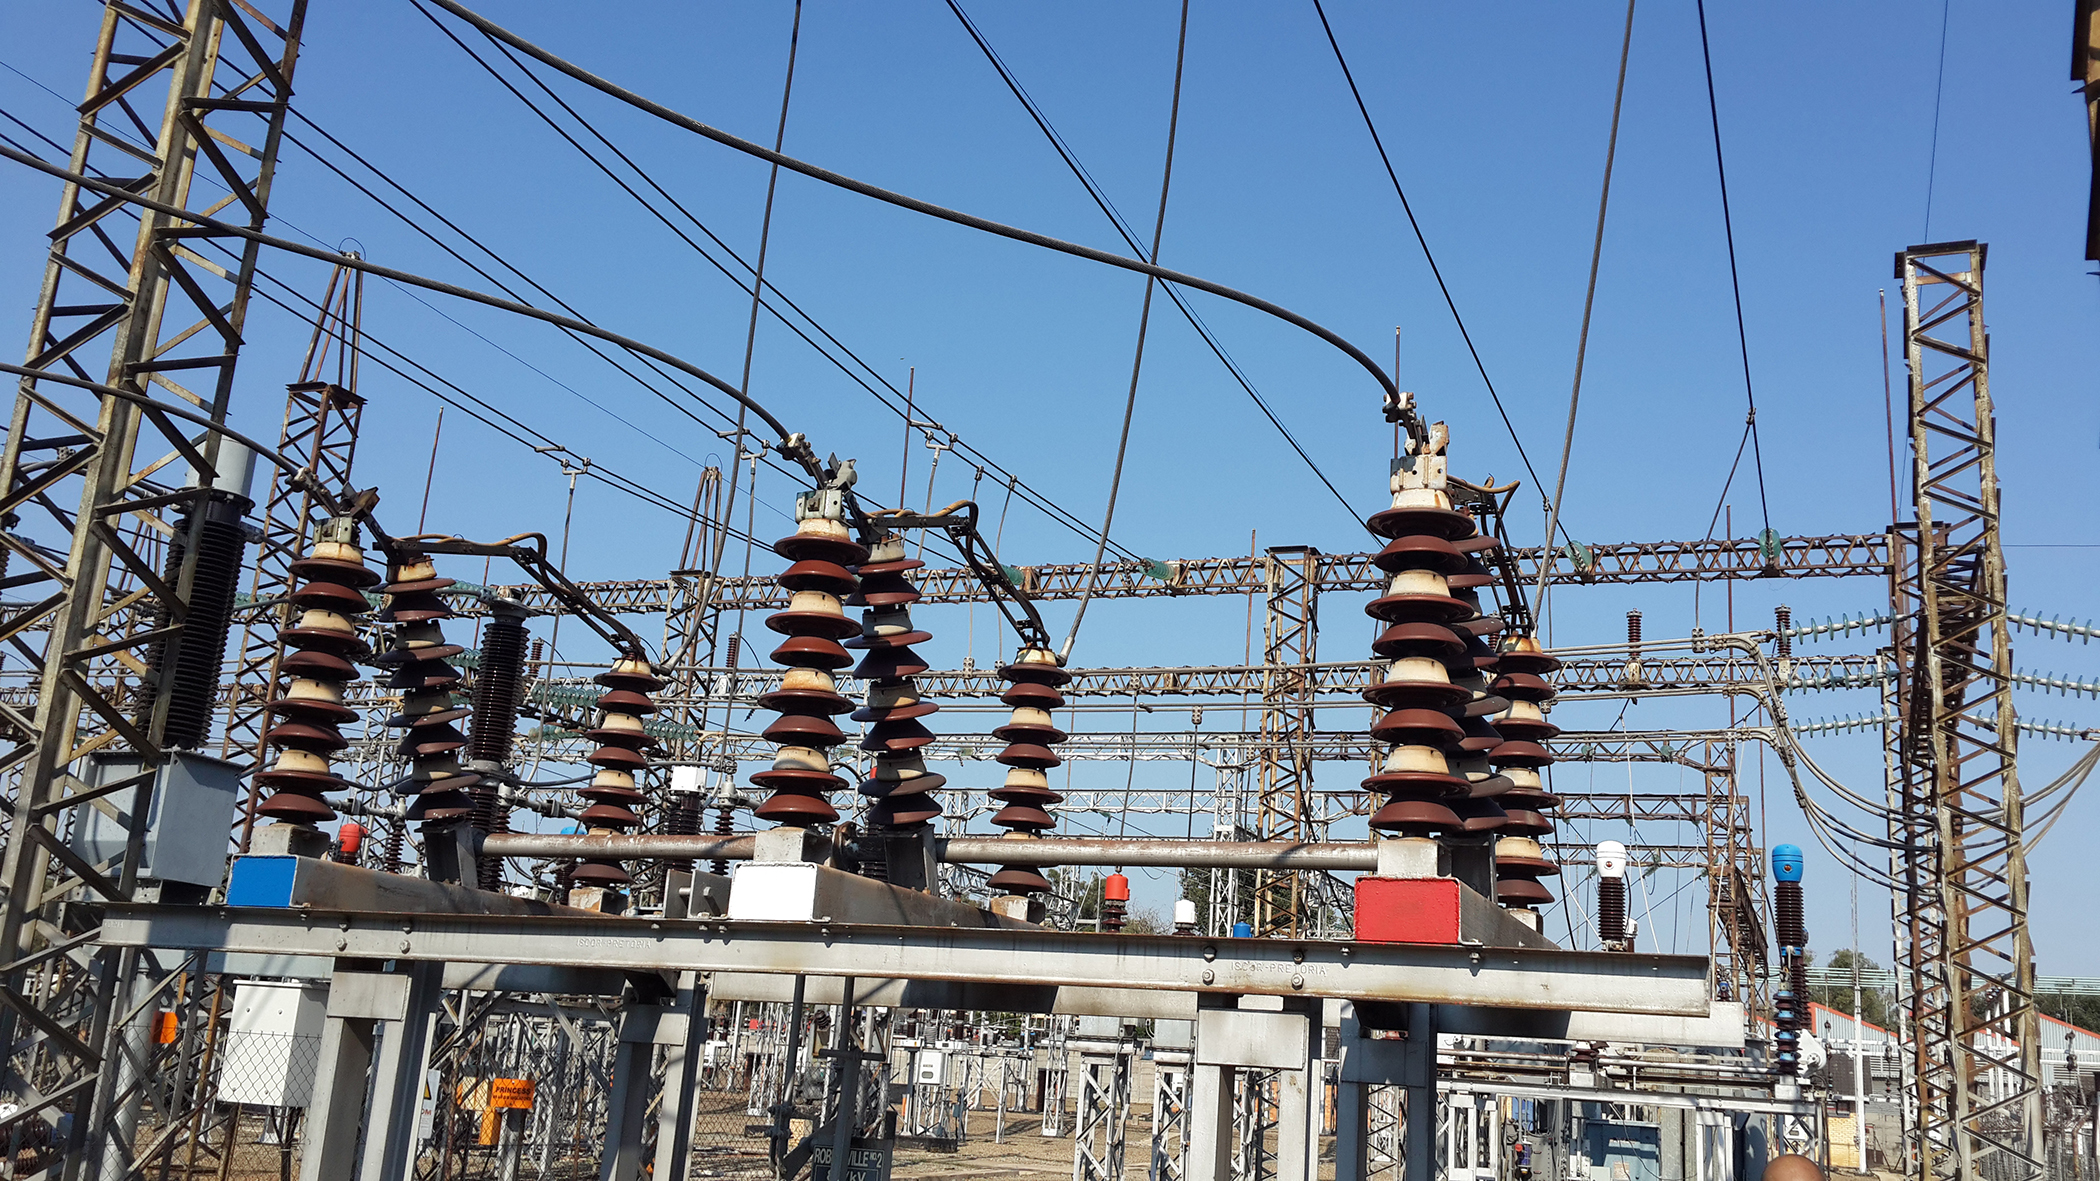 Substation design South Africa